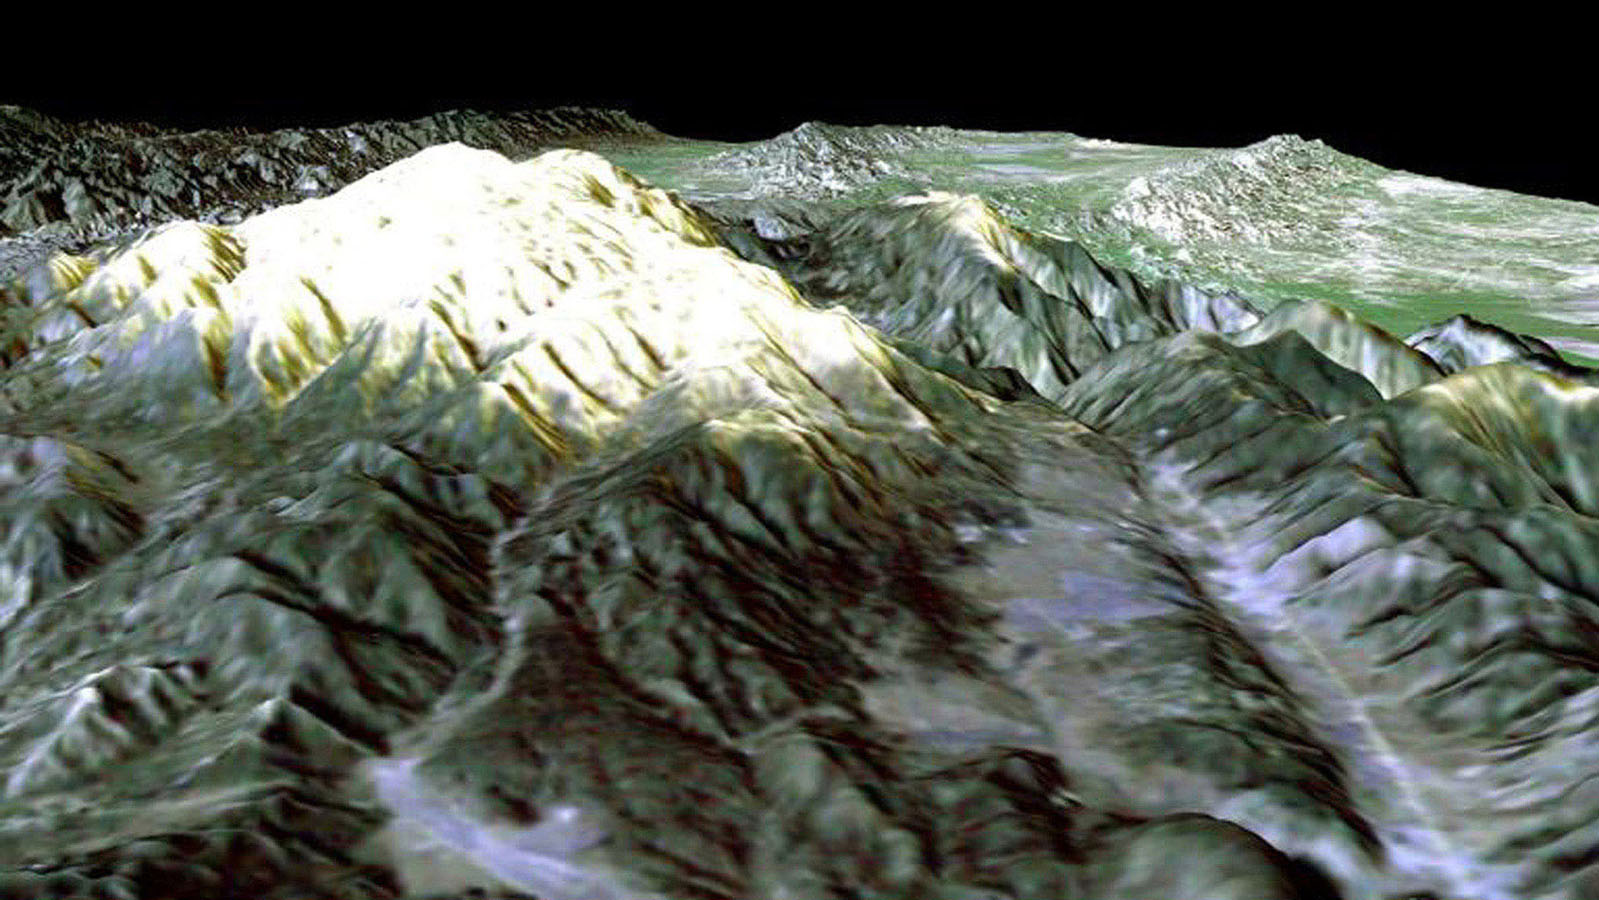 Prominently displayed in this image from NASA's Shuttle Radar Topography Mission, is Mt. Pinos, California, at 2,692 meters (8,831 feet) it is the highest peak in the Los Padres National Forest.